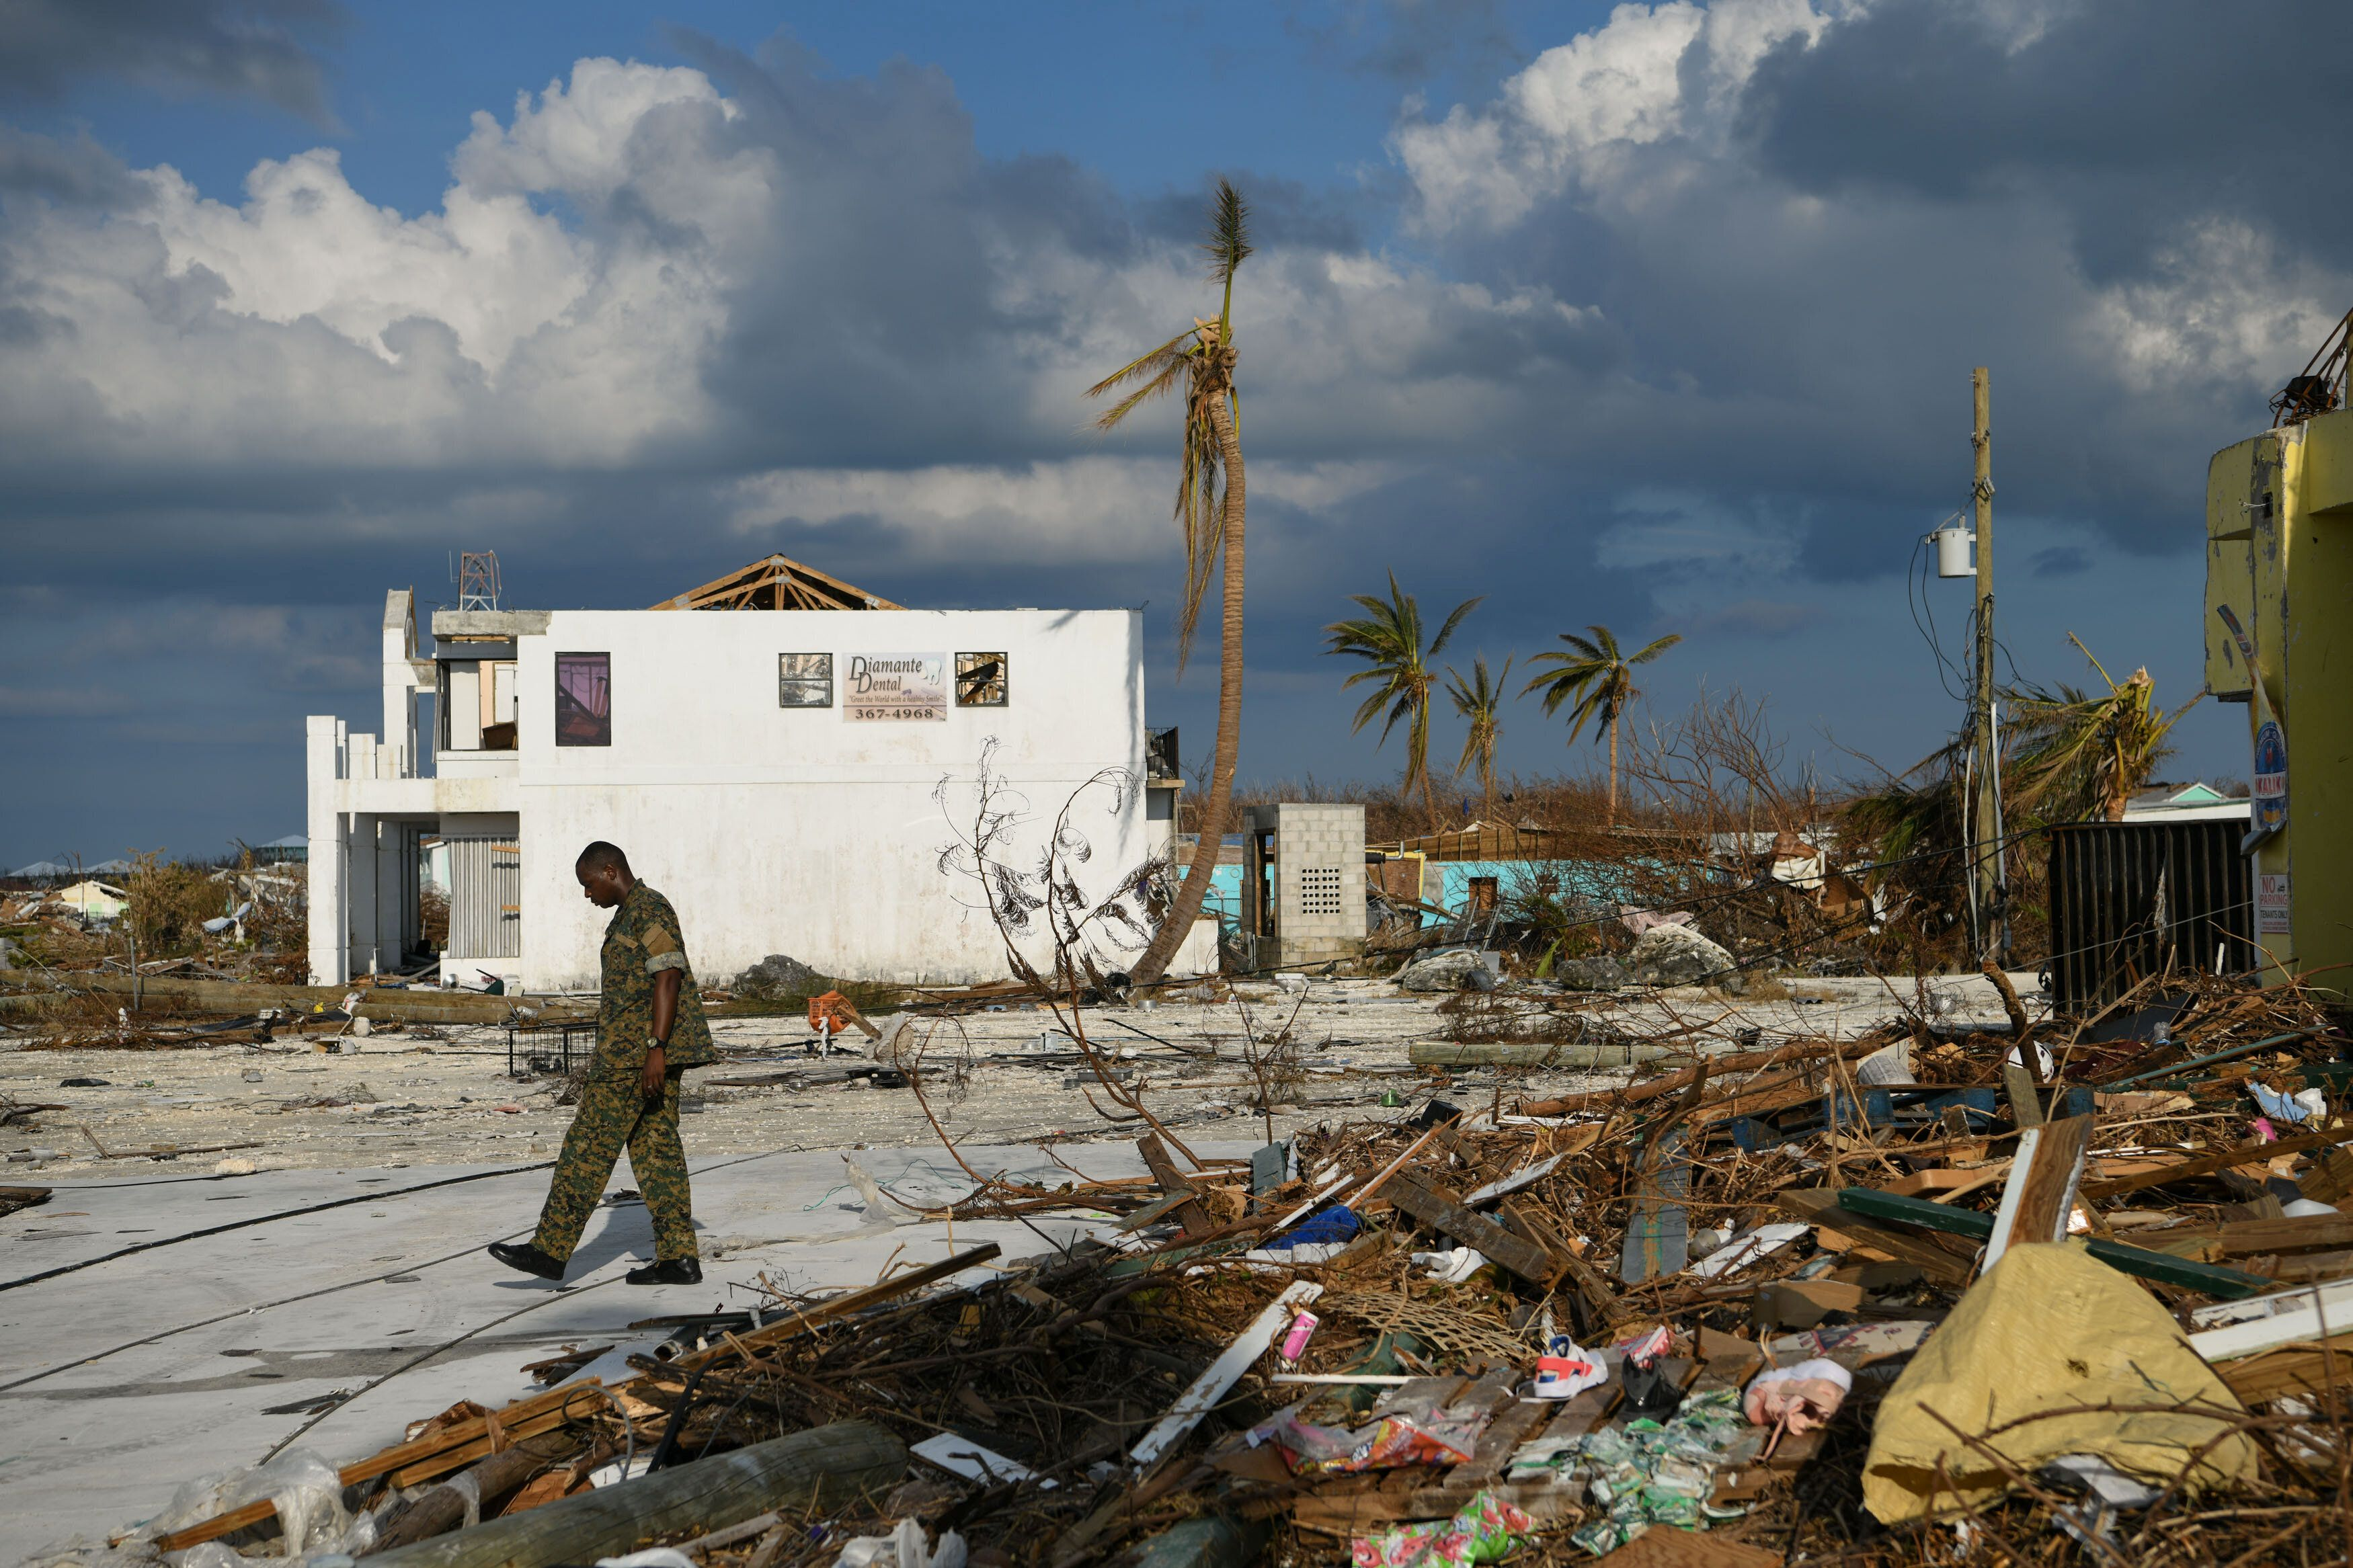 A member of the Bahamian military assesses damage in a destroyed neighborhood in the wake of Hurricane Dorian in Marsh Harbou